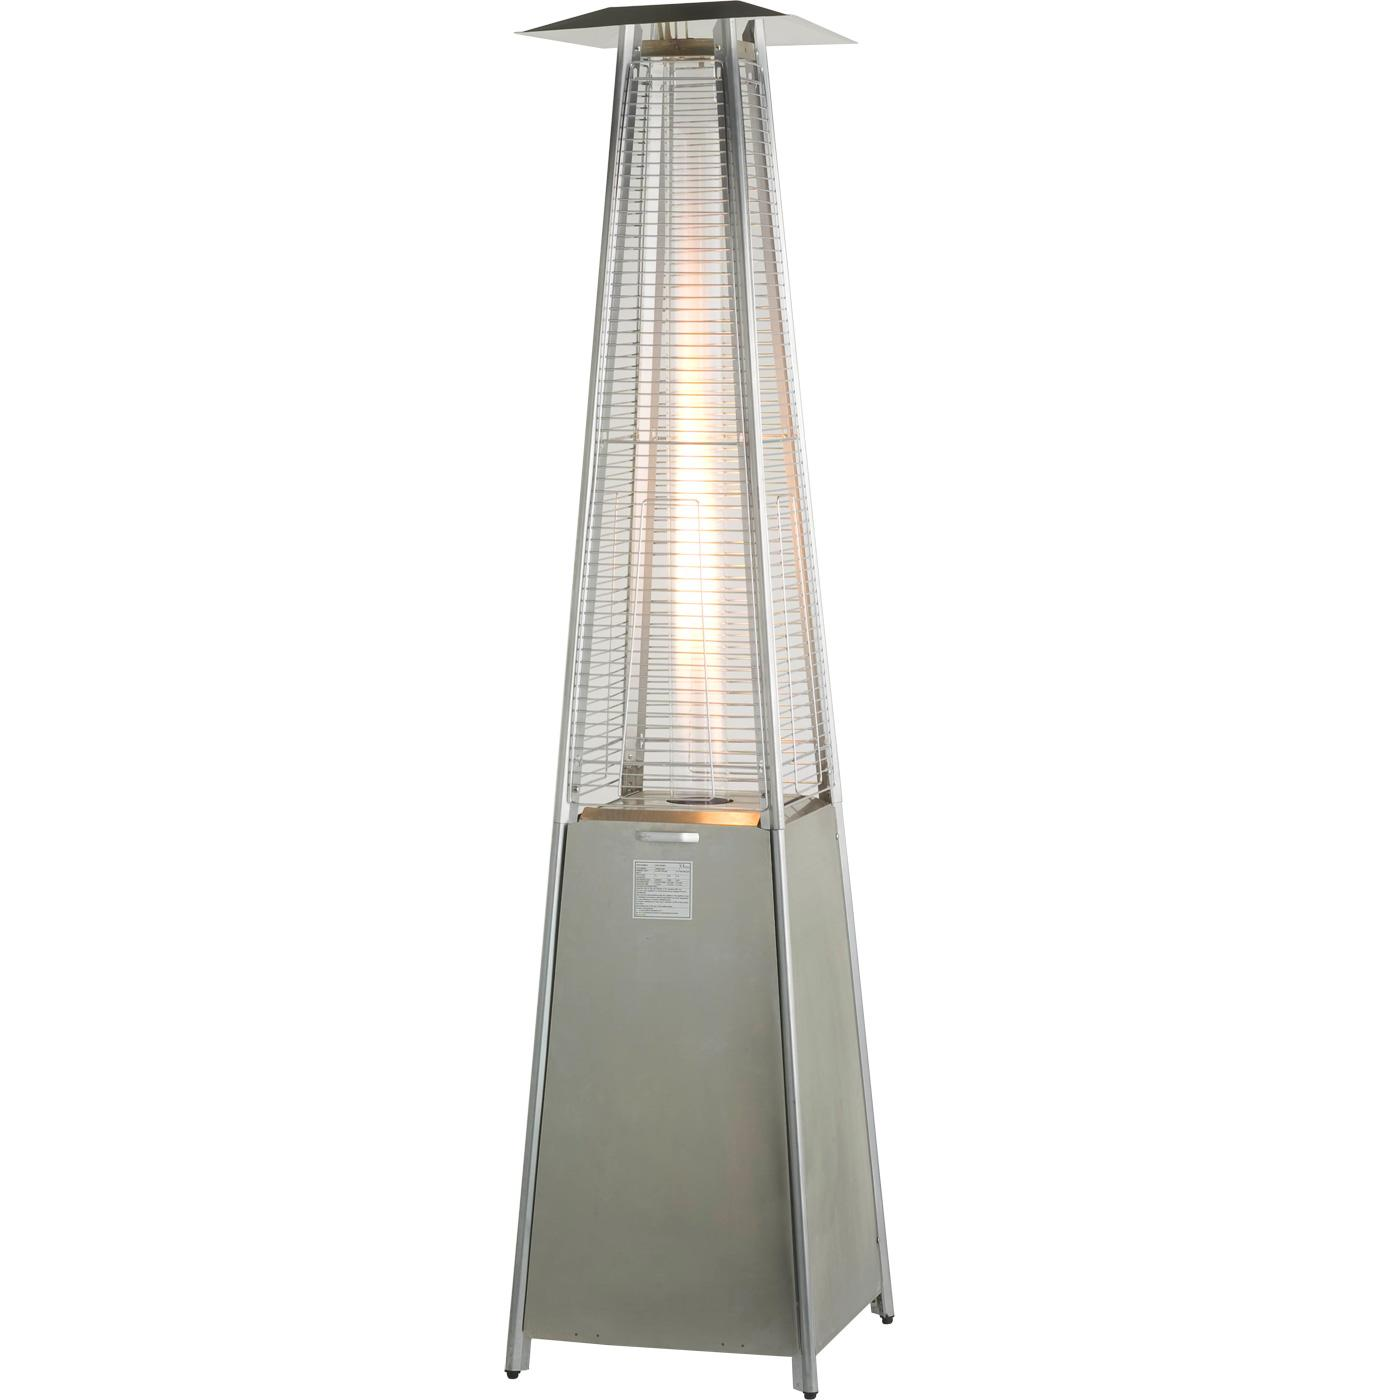 Patio Heater Athena  sc 1 st  Blast Event Hire & Hire a Patio Heater Athena - Heating Heating and Cooling - Blast ...